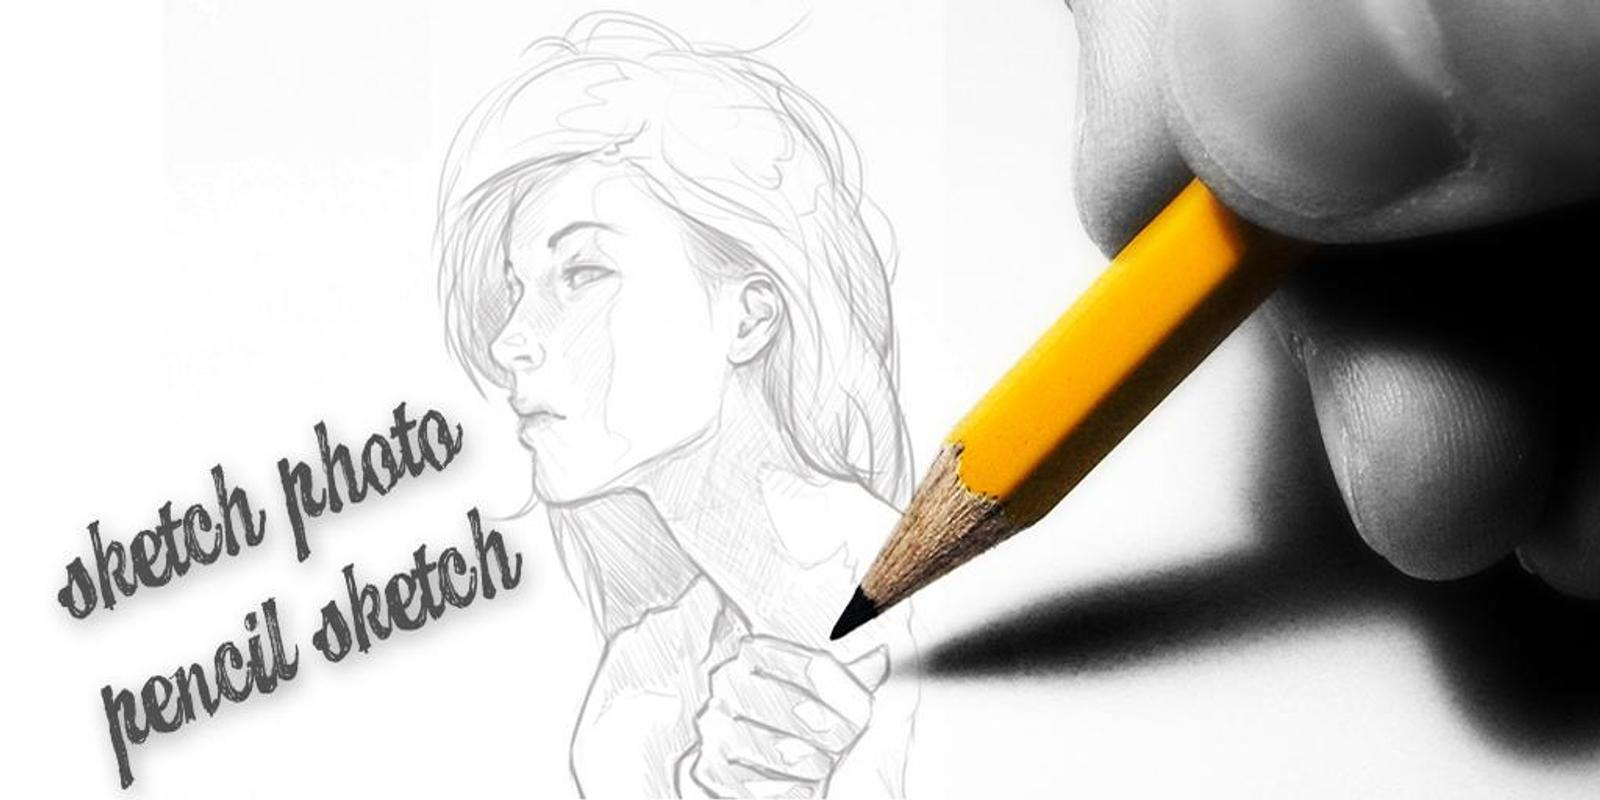 Sketch photo editor pencil sketch photo maker الملصق